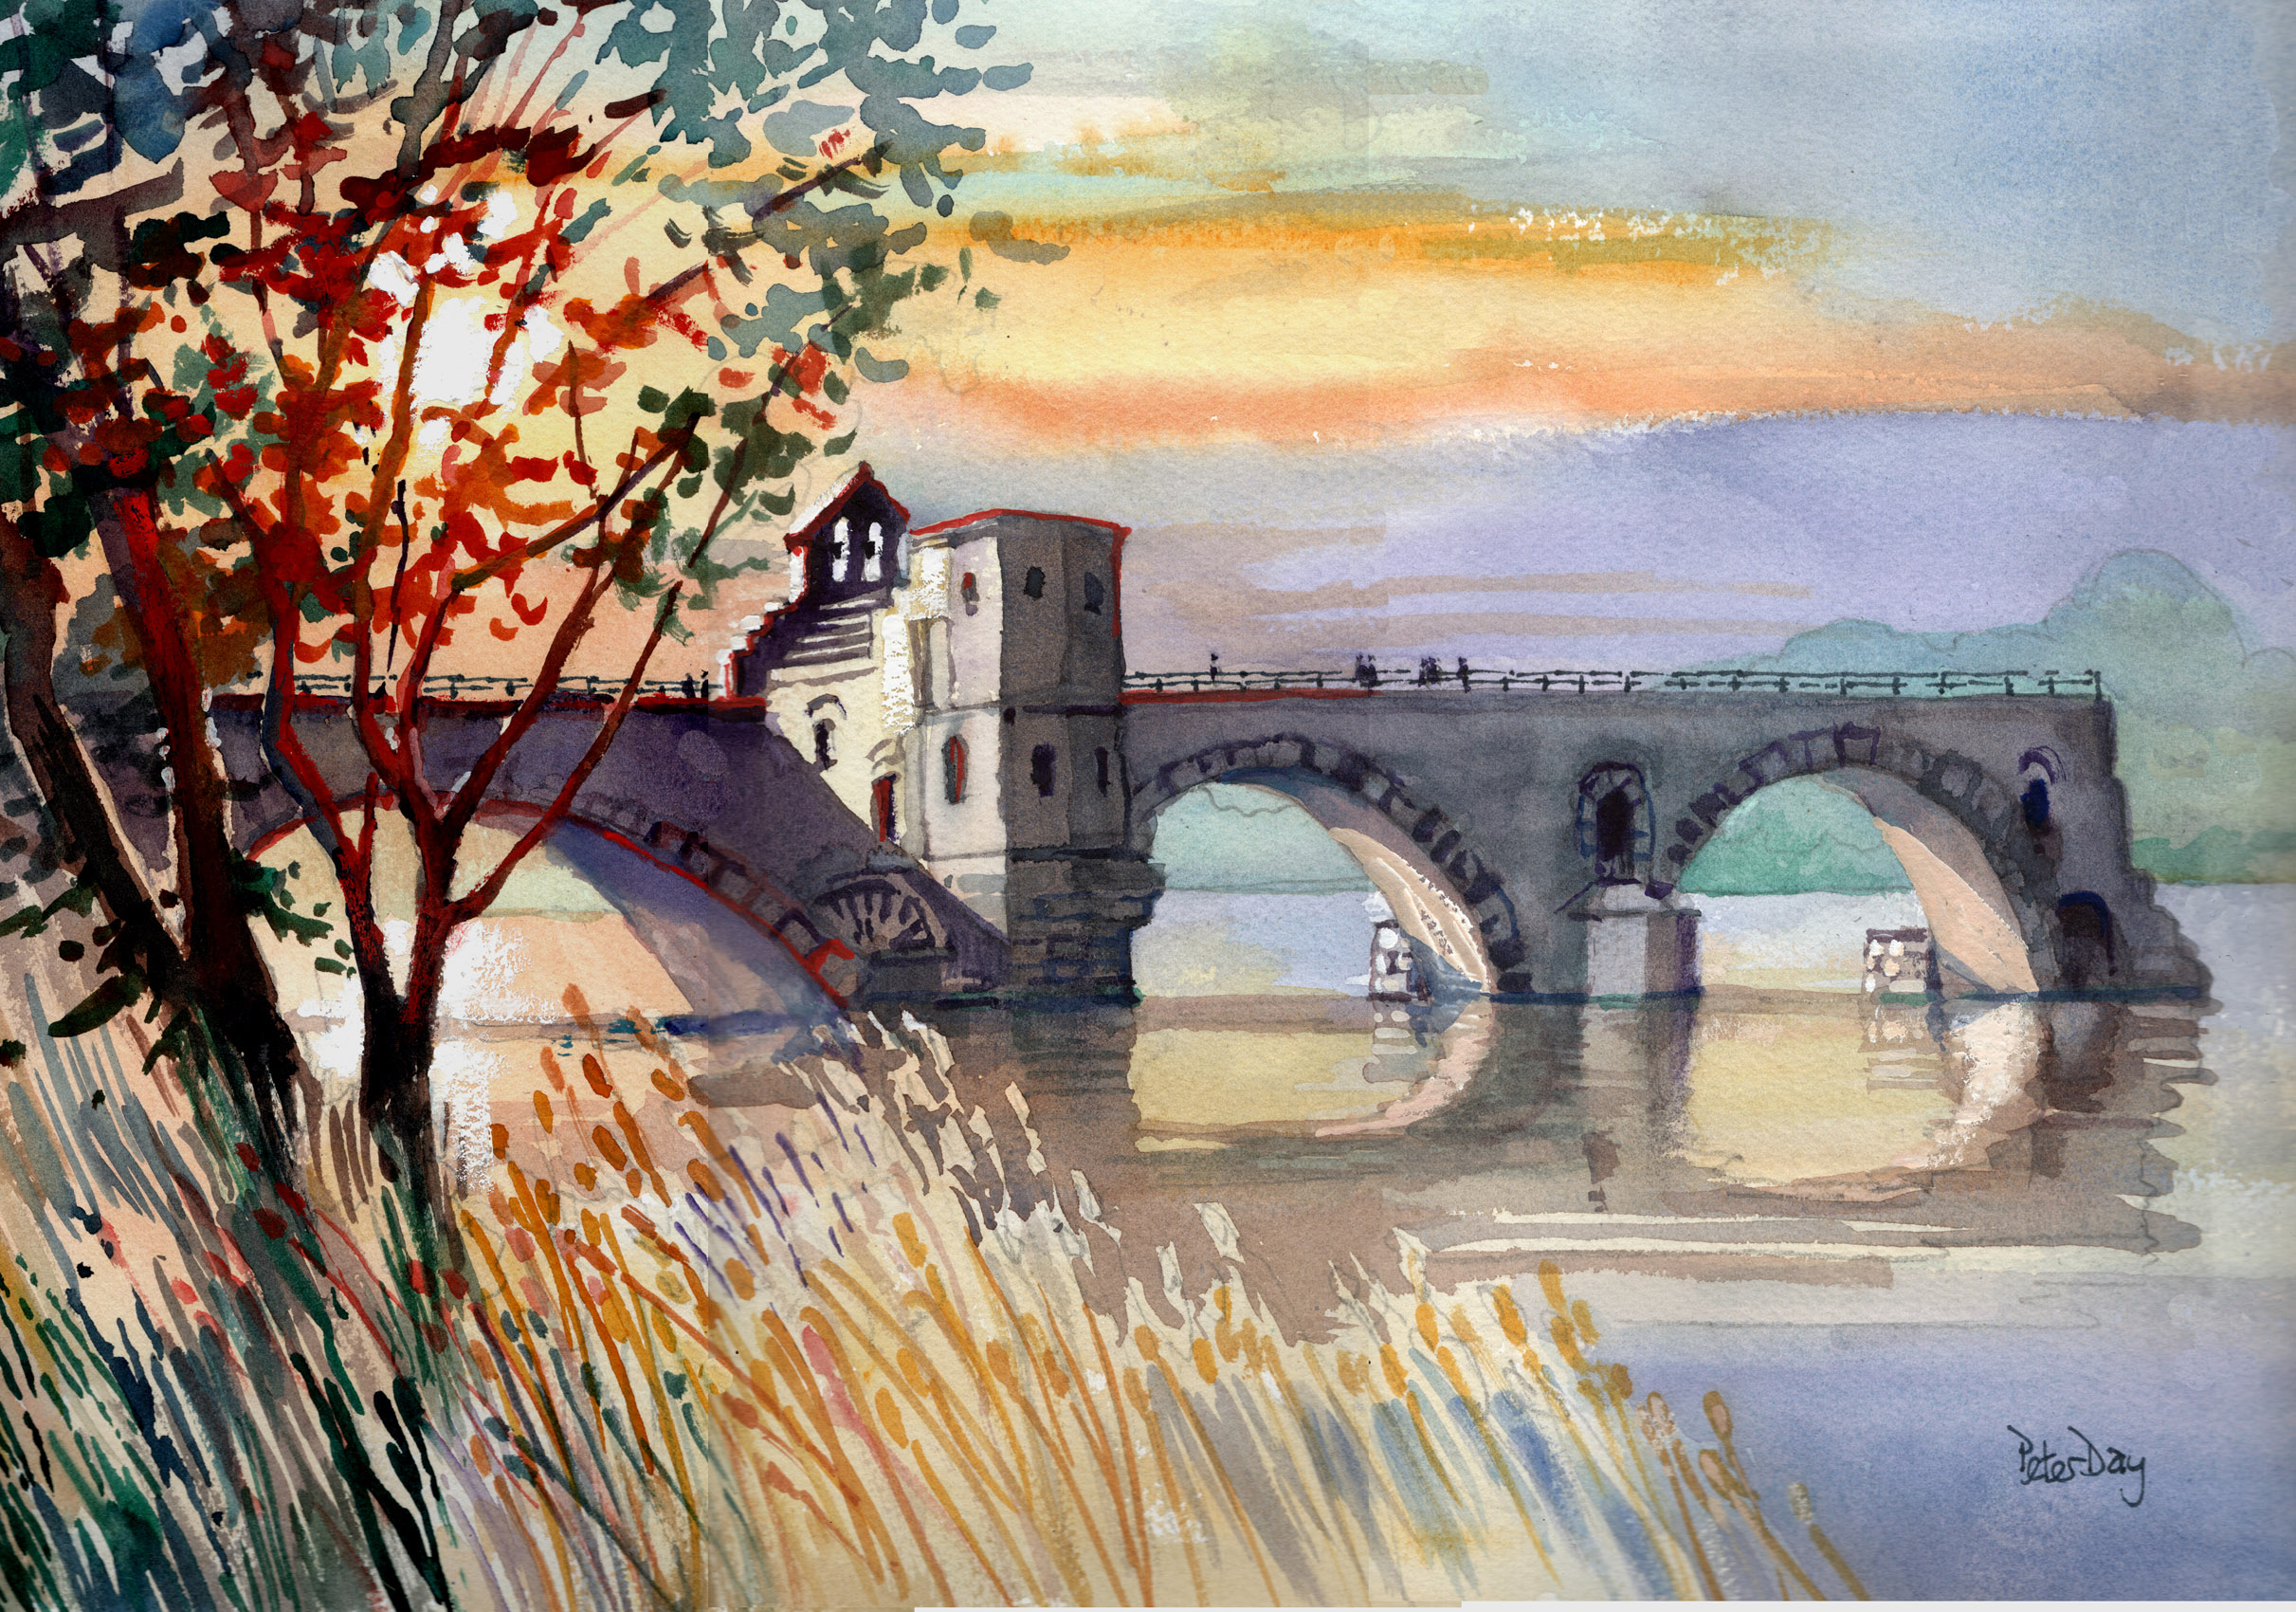 Peter Day, Artist in Watercolour